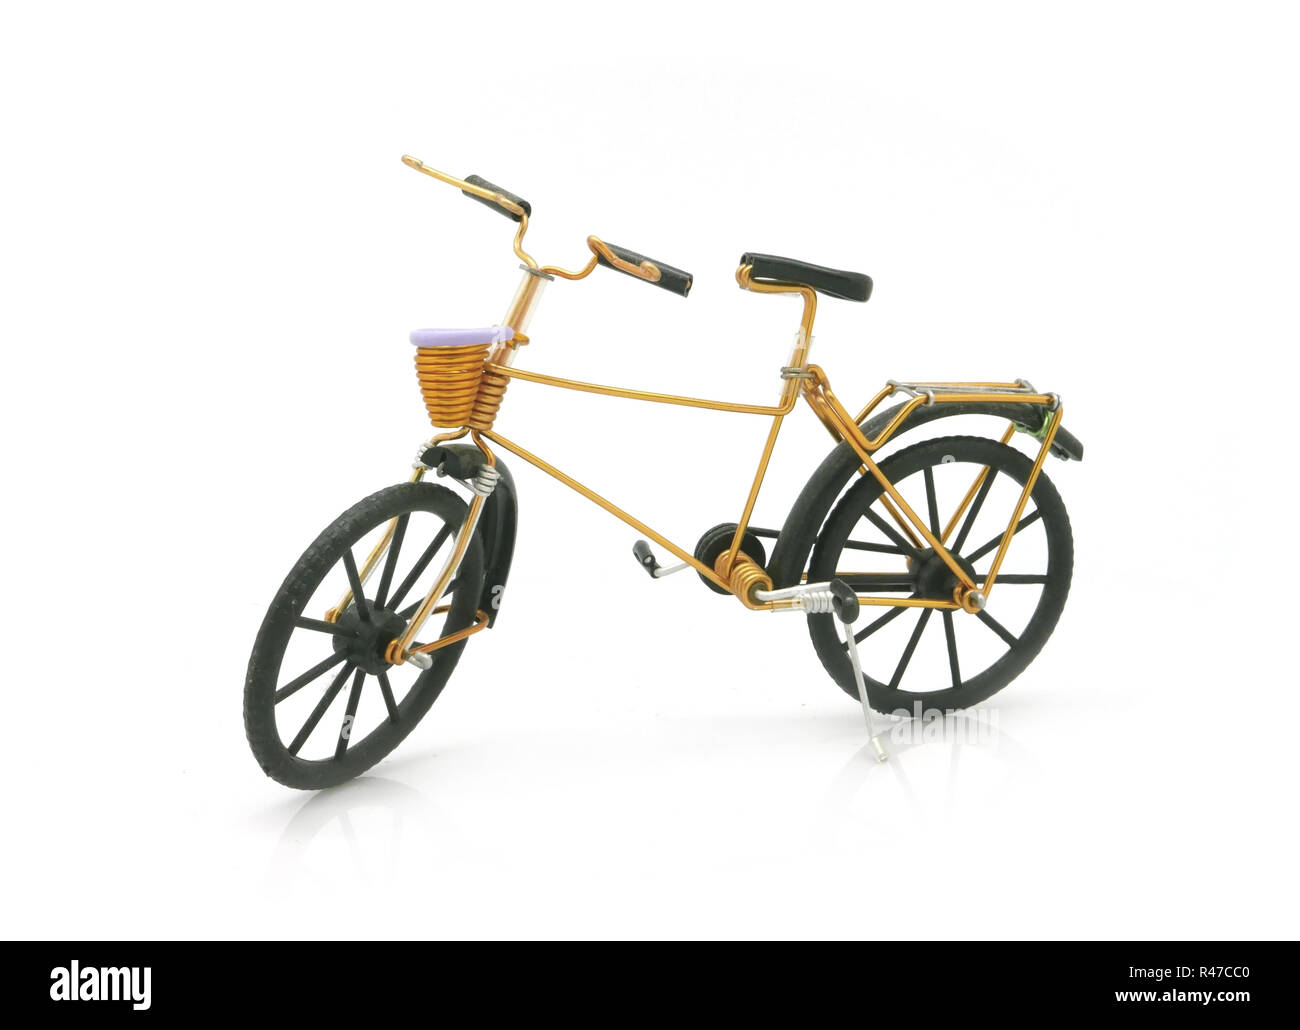 vintage gold bicycle model for decoration - Stock Image